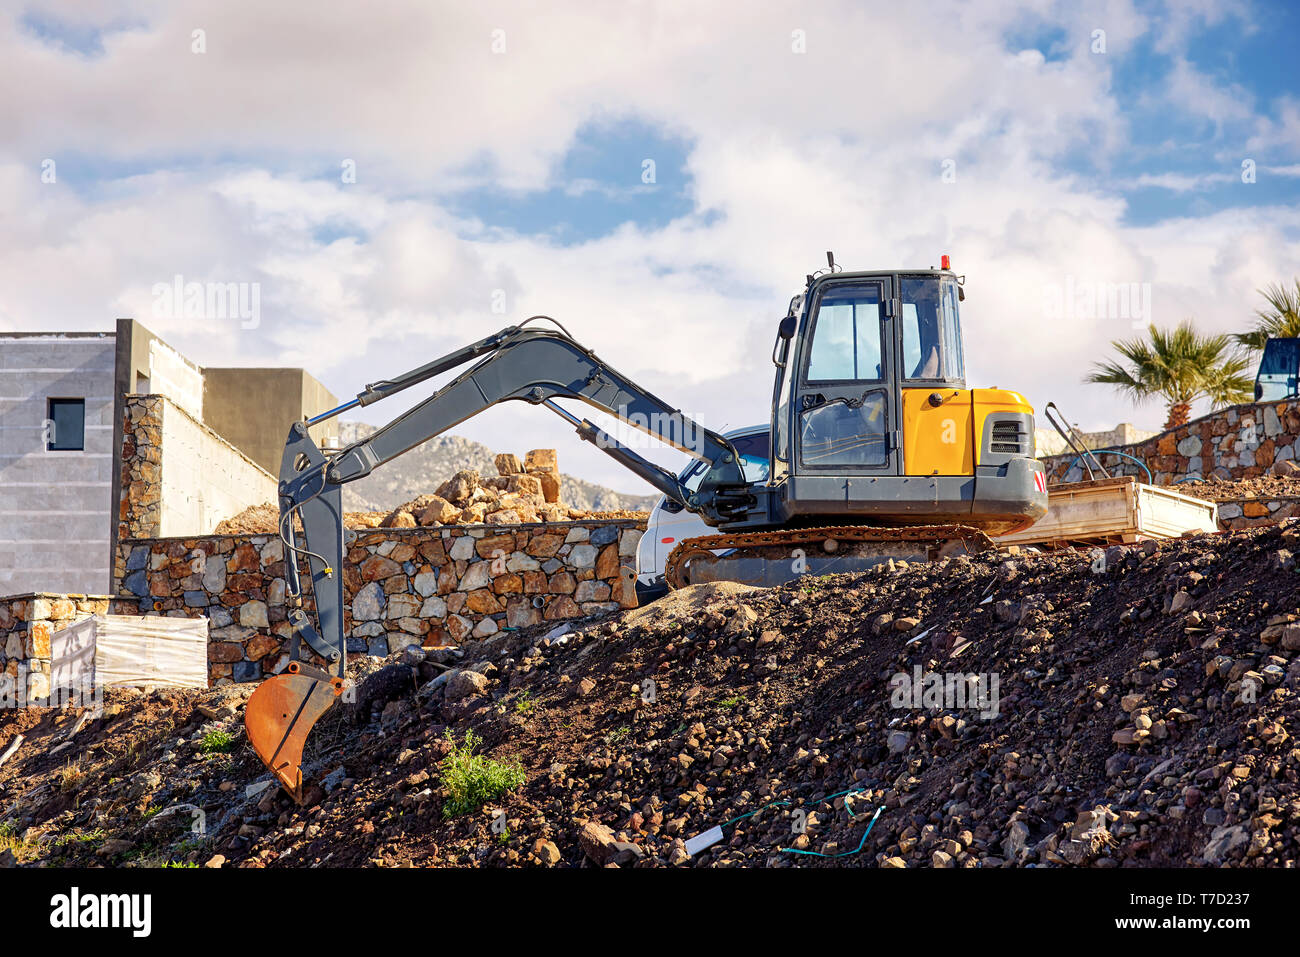 Earth mover excavator parked over the hill at a real estate building construction site - Stock Image